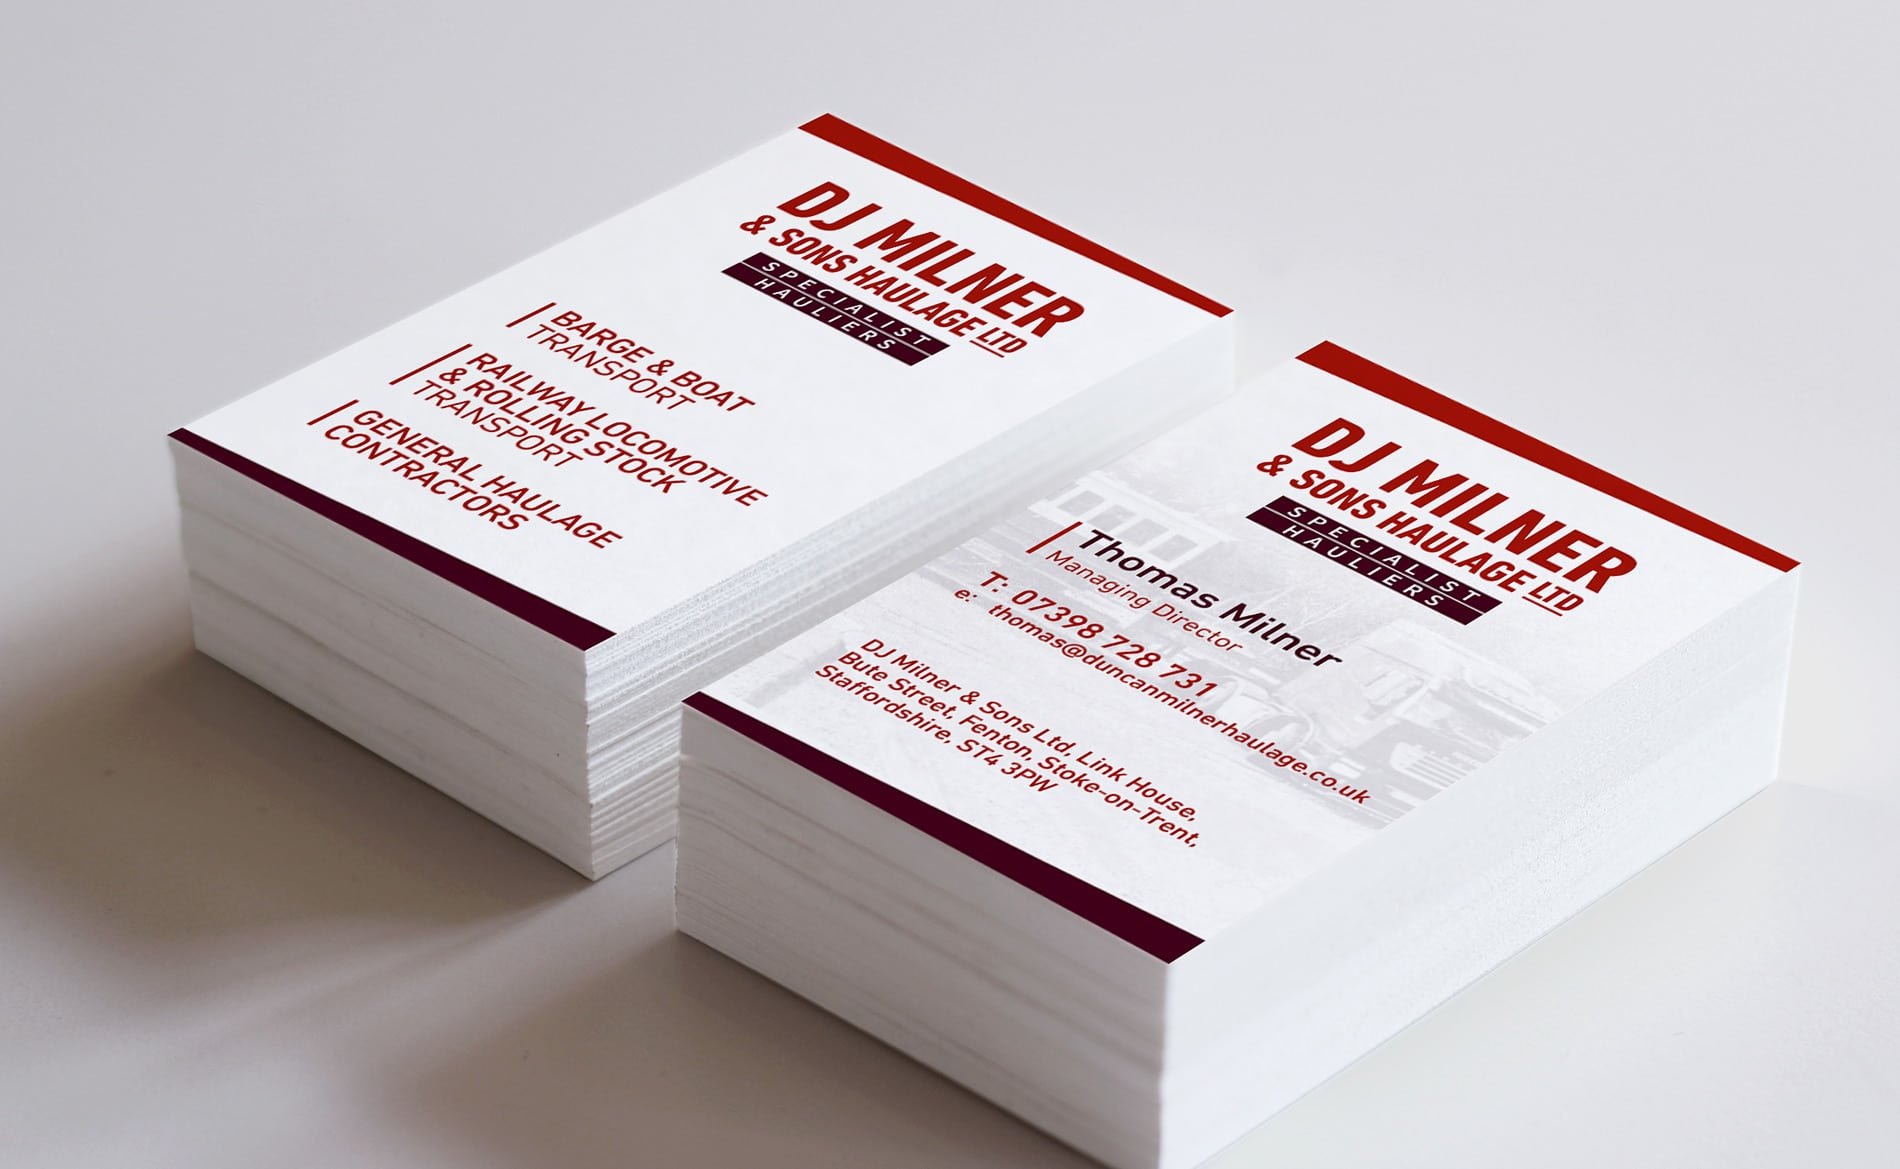 Graphic Design and Branding Services DJ Milner Haulage Business Card Design